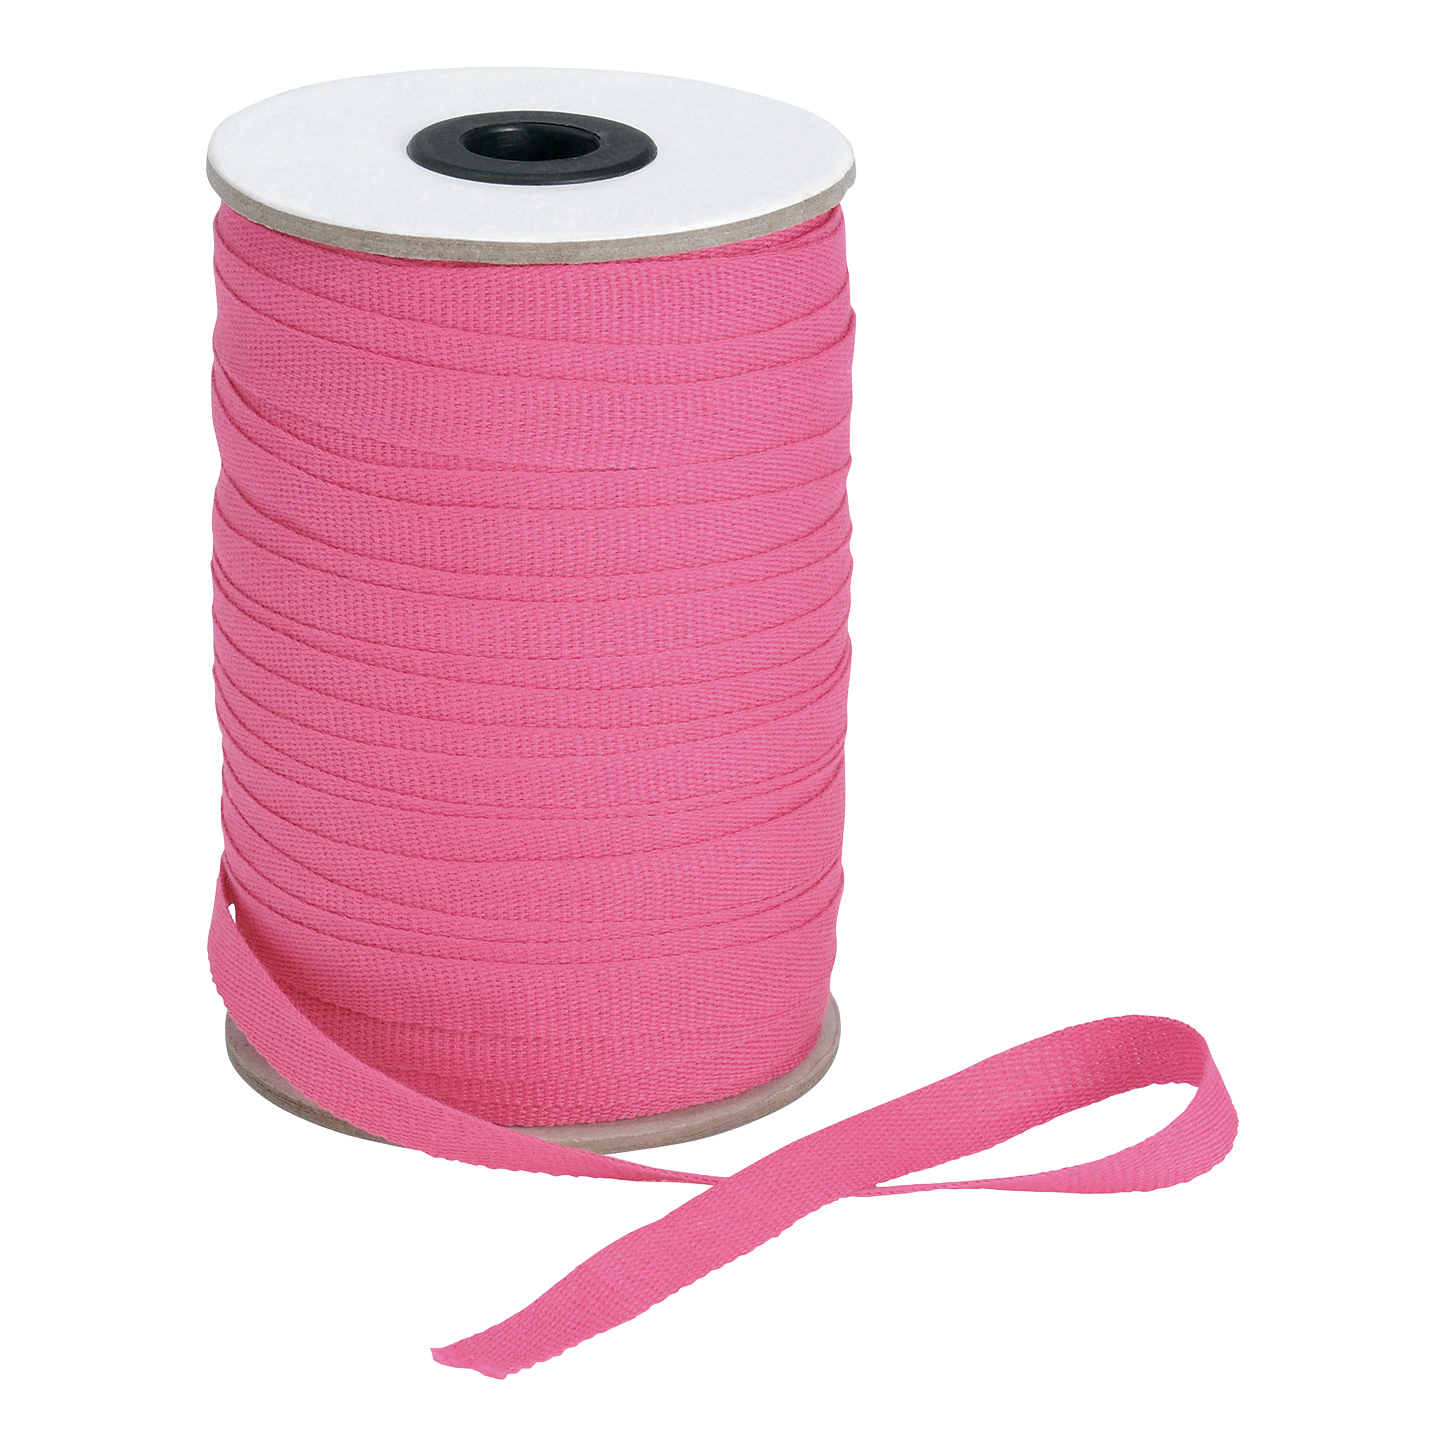 Ornamental trimmings 5 Star Office Legal Tape Reel 10mmx100m Pink